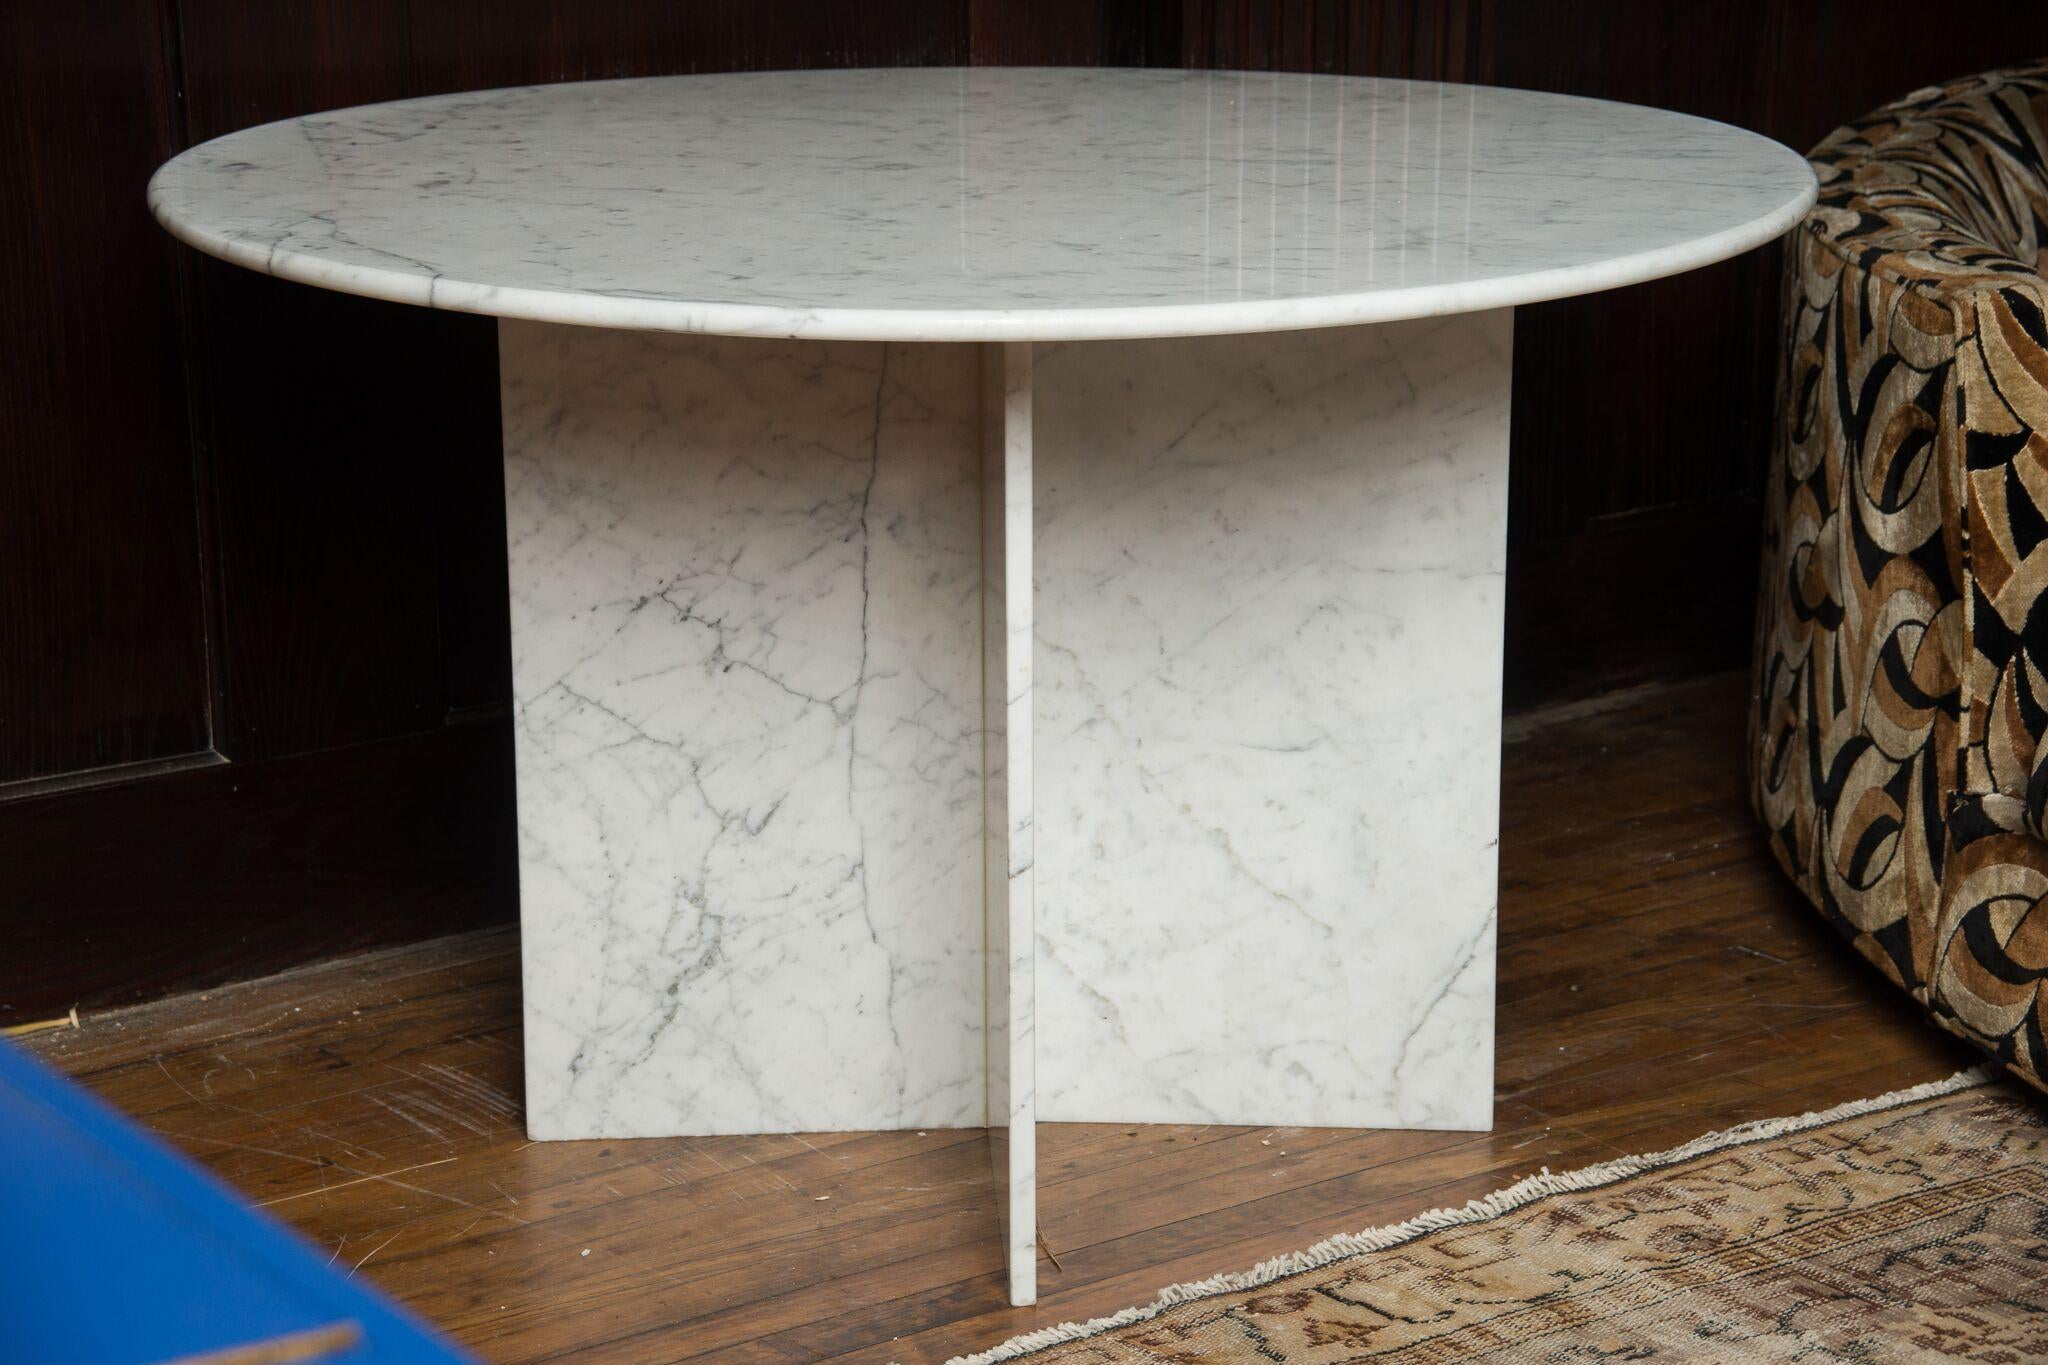 Round Carrara Marble Pedestal Dining Table Chairish : round carrara marble pedestal dining table 4879aspectfitampwidth640ampheight640 from www.chairish.com size 640 x 640 jpeg 43kB